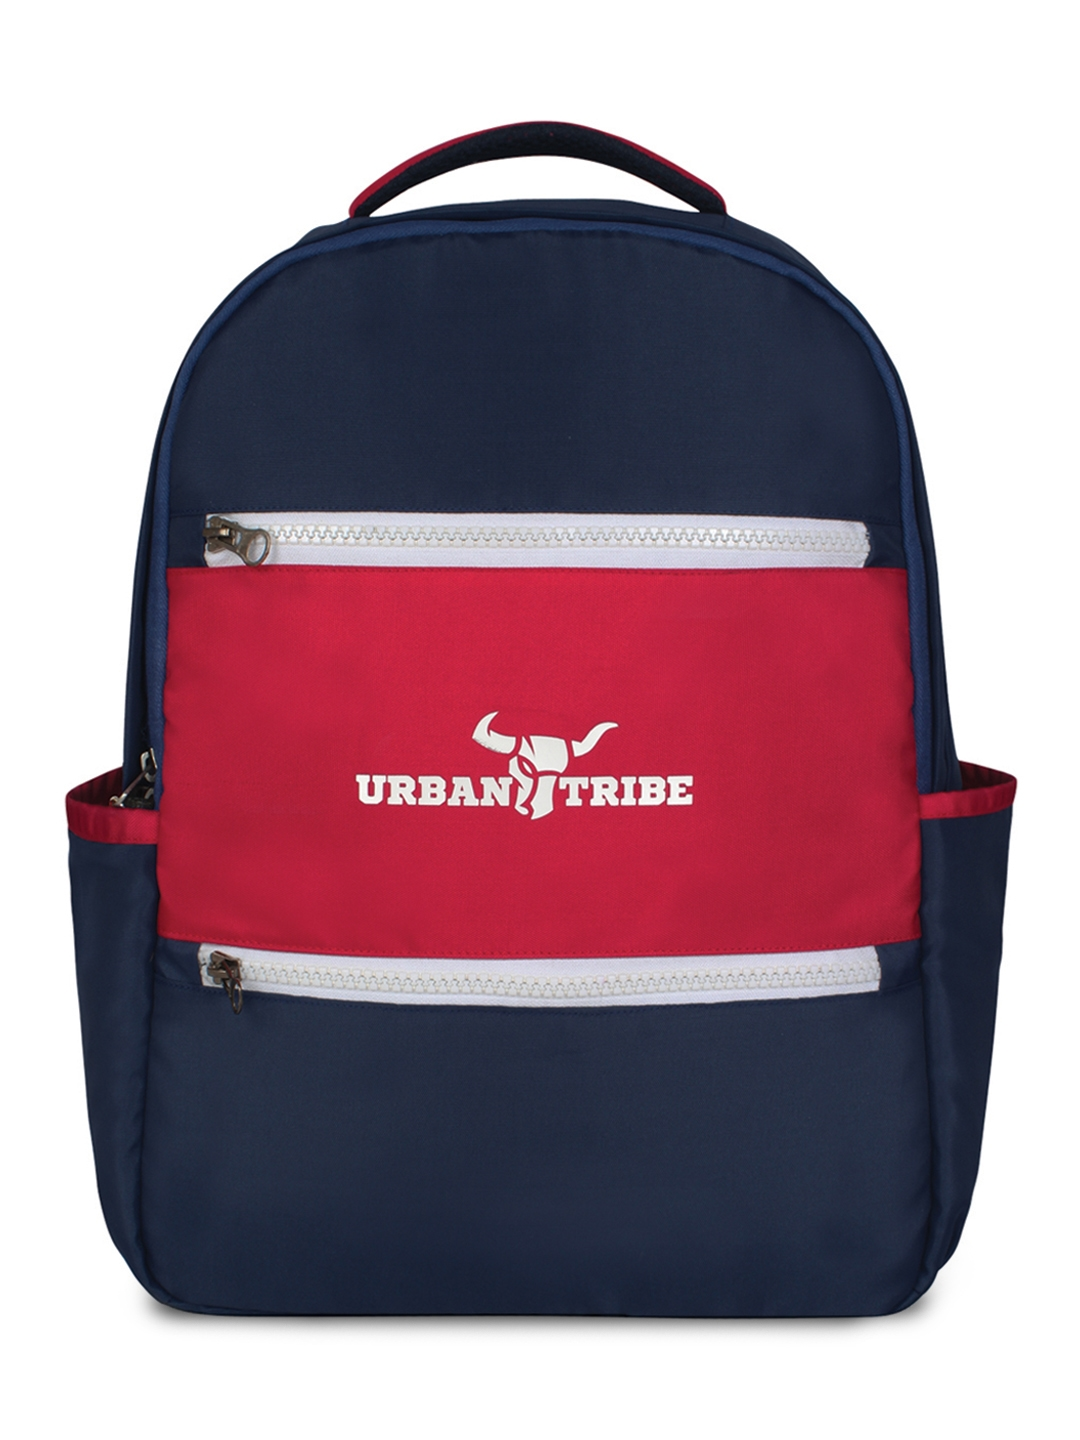 URBAN TRIBE Unisex Navy Blue Solid Backpack